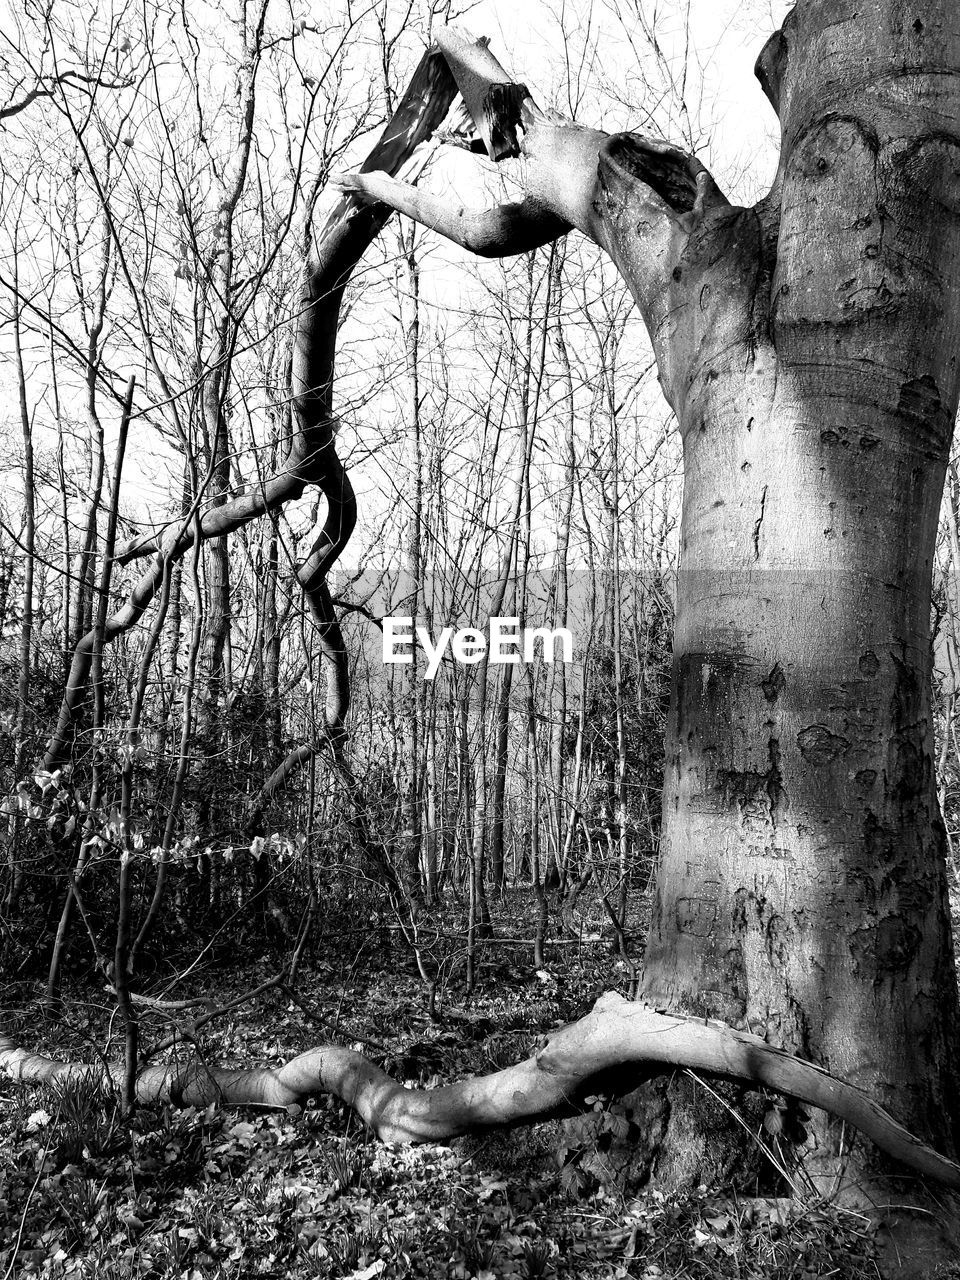 tree, plant, bare tree, trunk, forest, branch, nature, tree trunk, land, day, tranquility, no people, woodland, outdoors, growth, non-urban scene, field, environment, dead plant